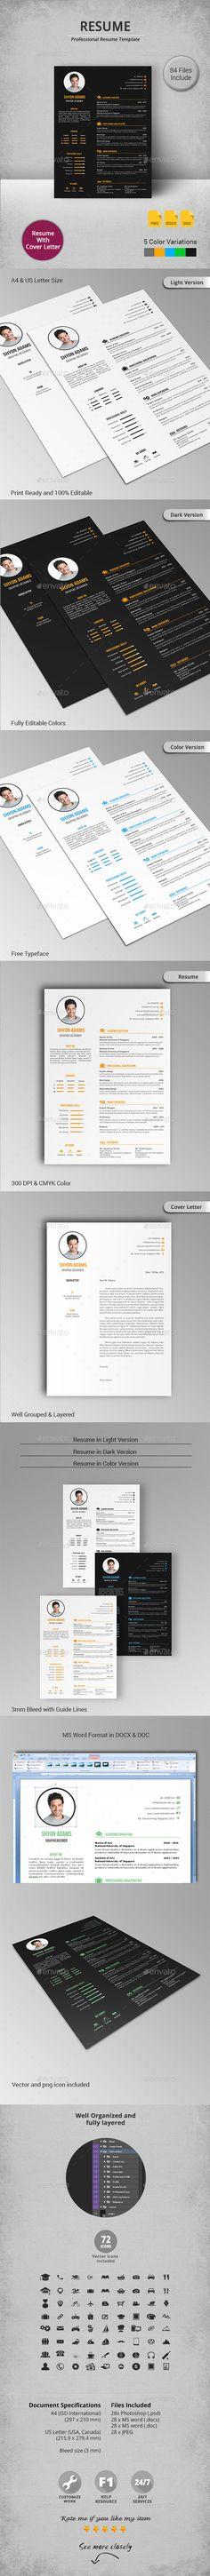 Simple Resume   Simple resume, Resume cover letters and Simple ...